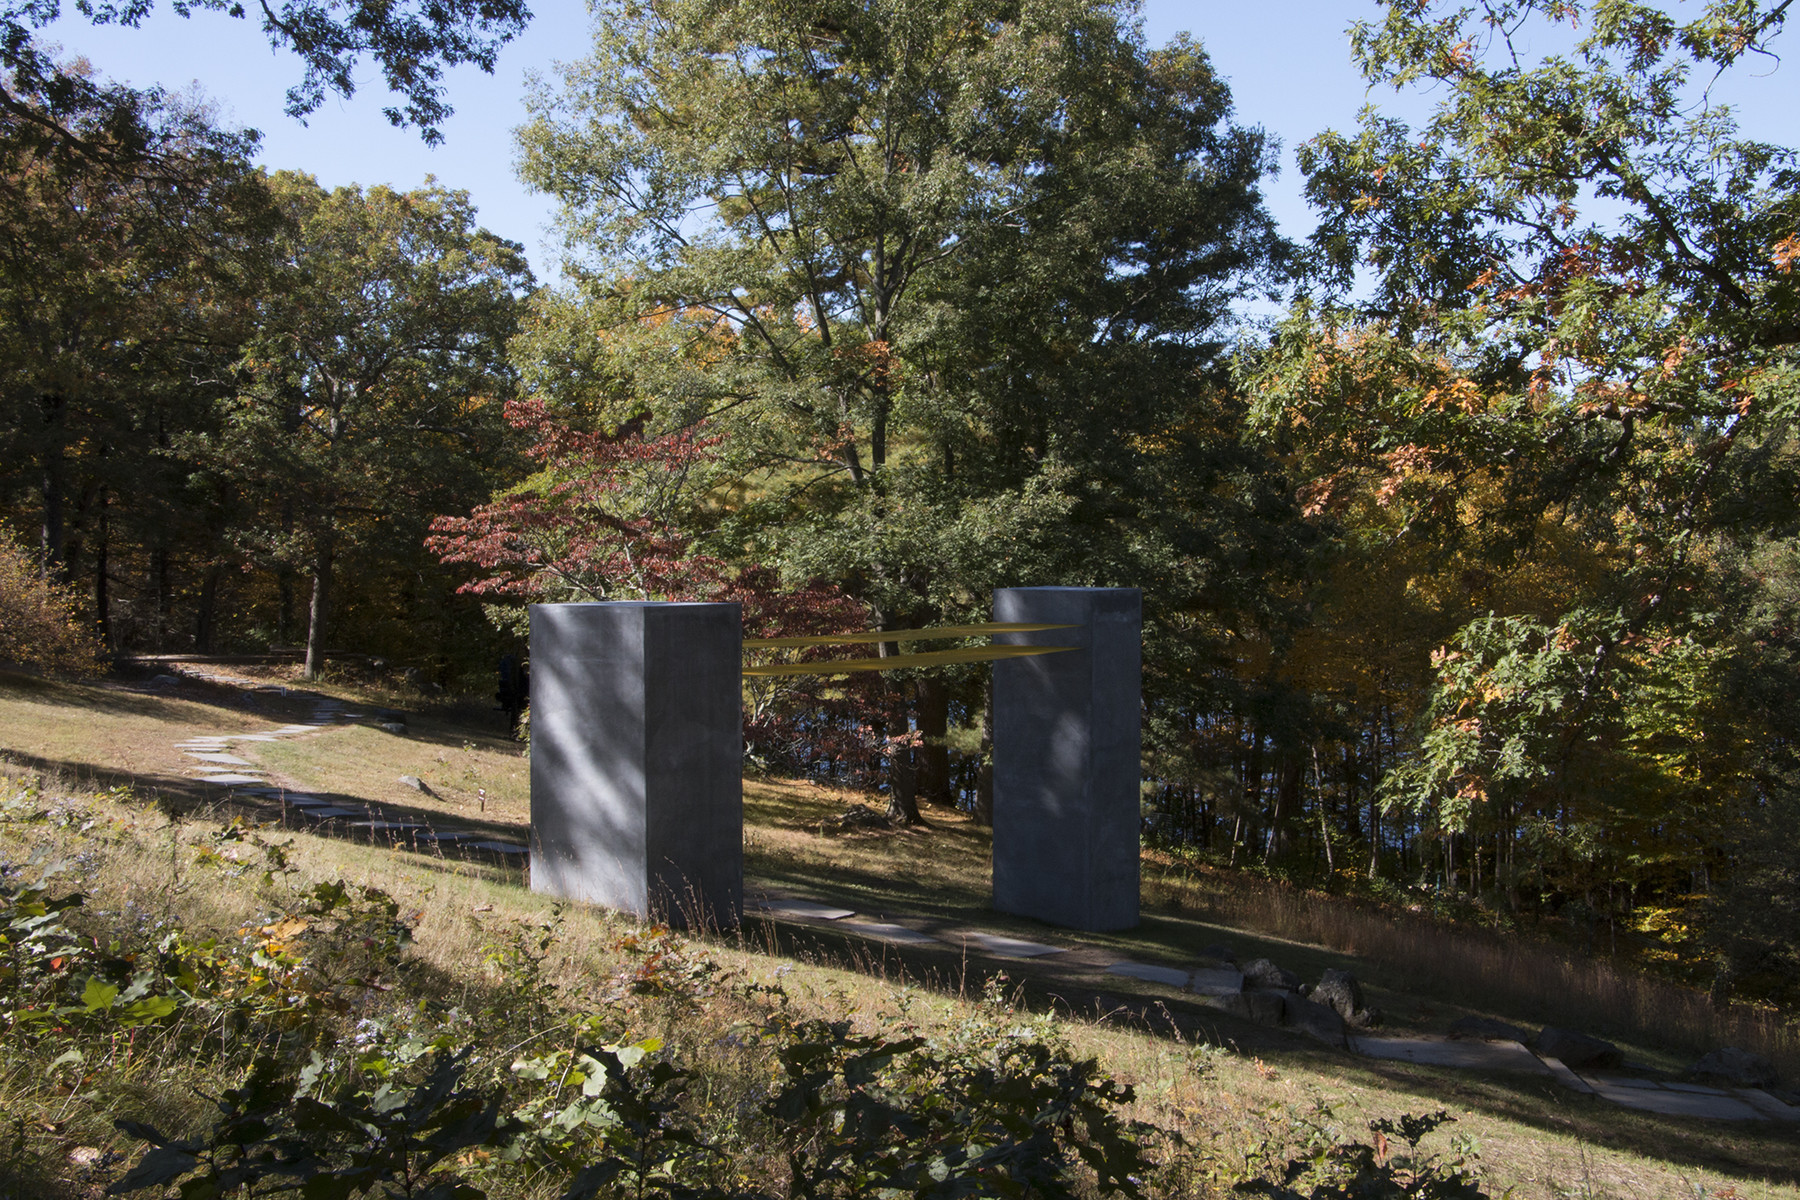 deCordova Sculpture Park and Museum, 2015 - 2017 Beacon